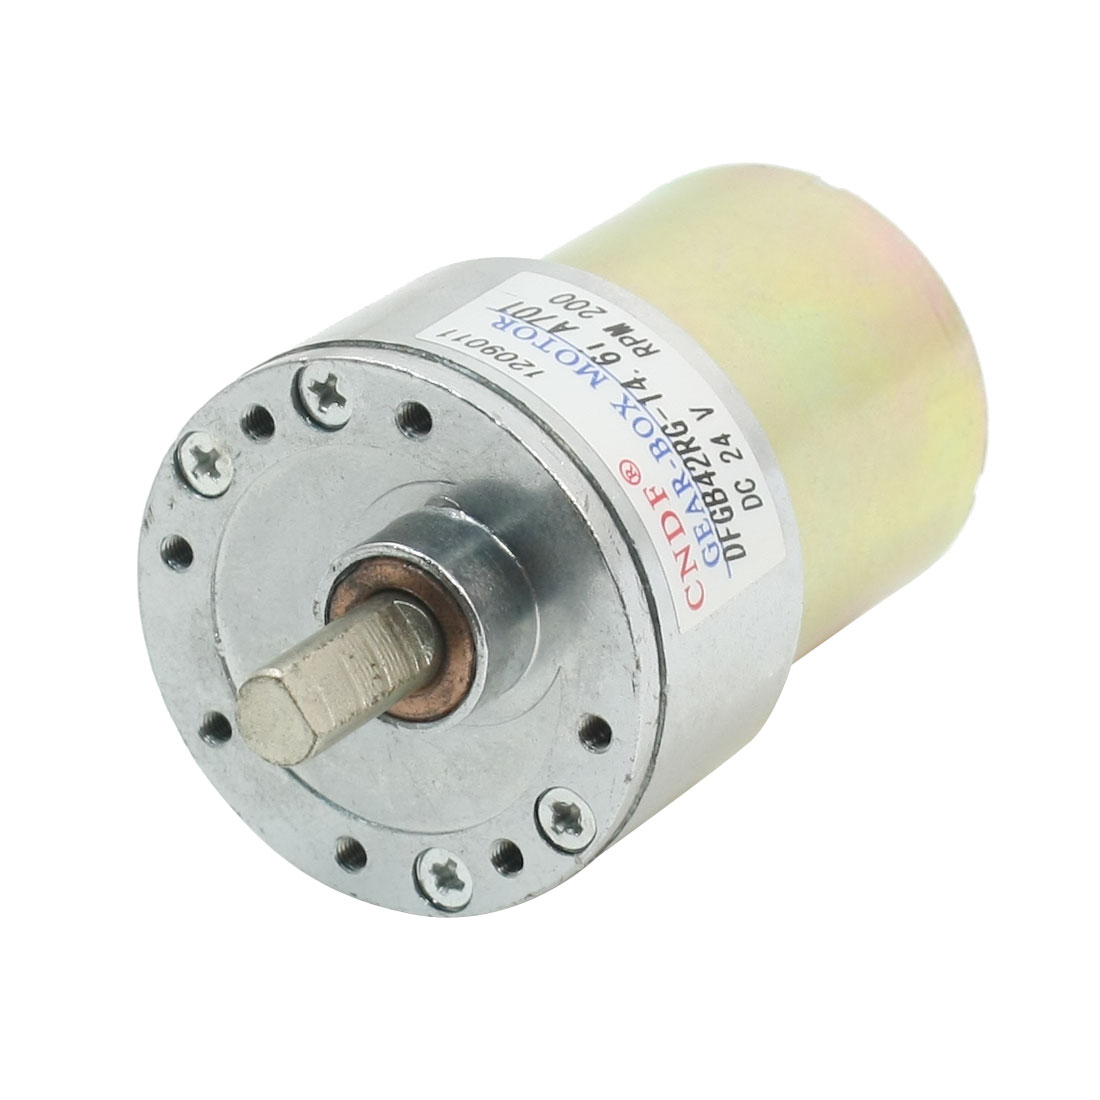 Cylindrical 2.5mm Thread Hole Dia Magnetic Gear Box Motor DC24V 200RPM